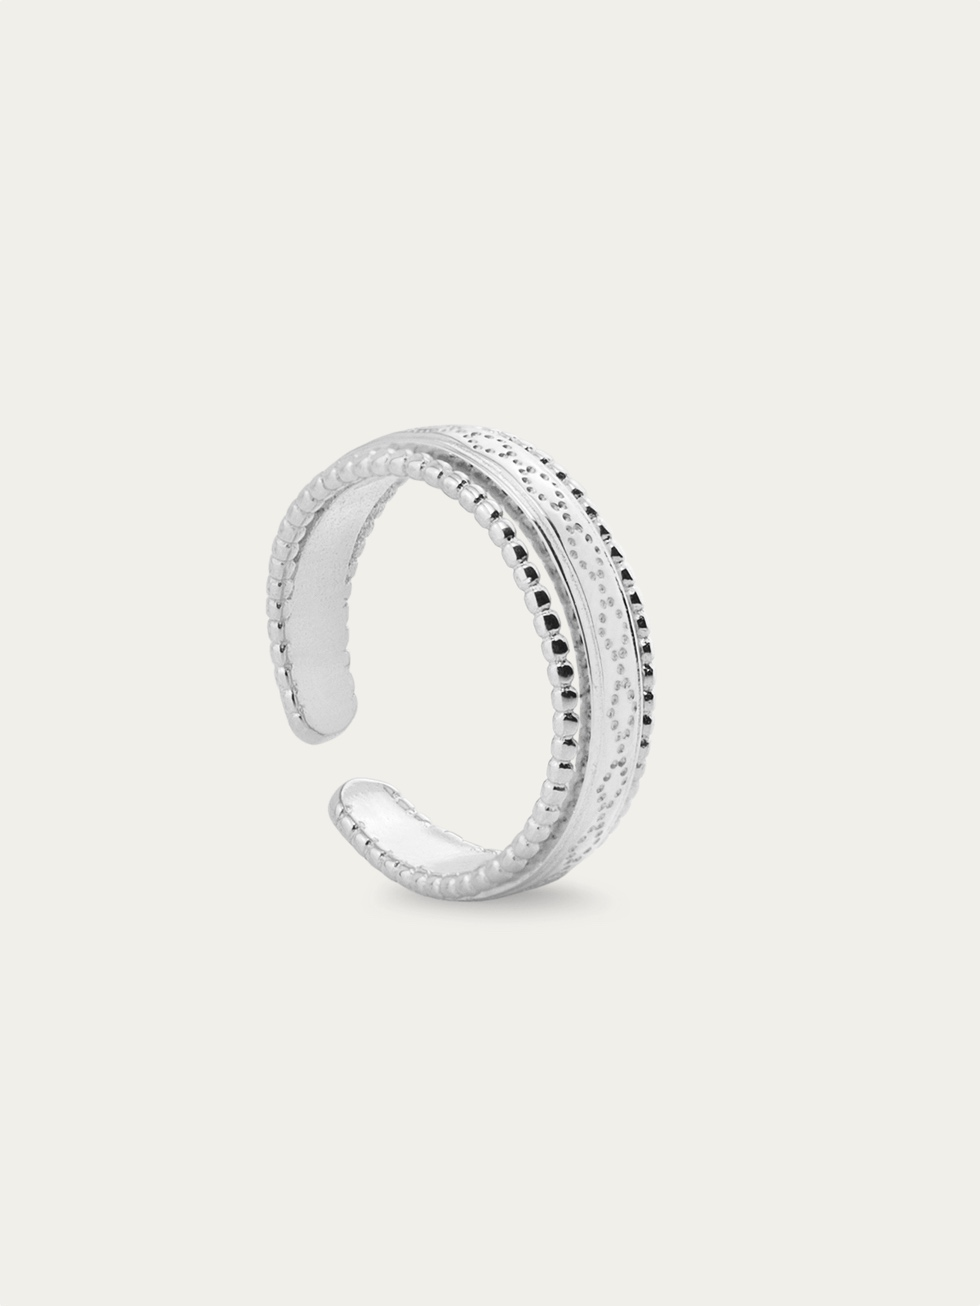 ROMA silver ring